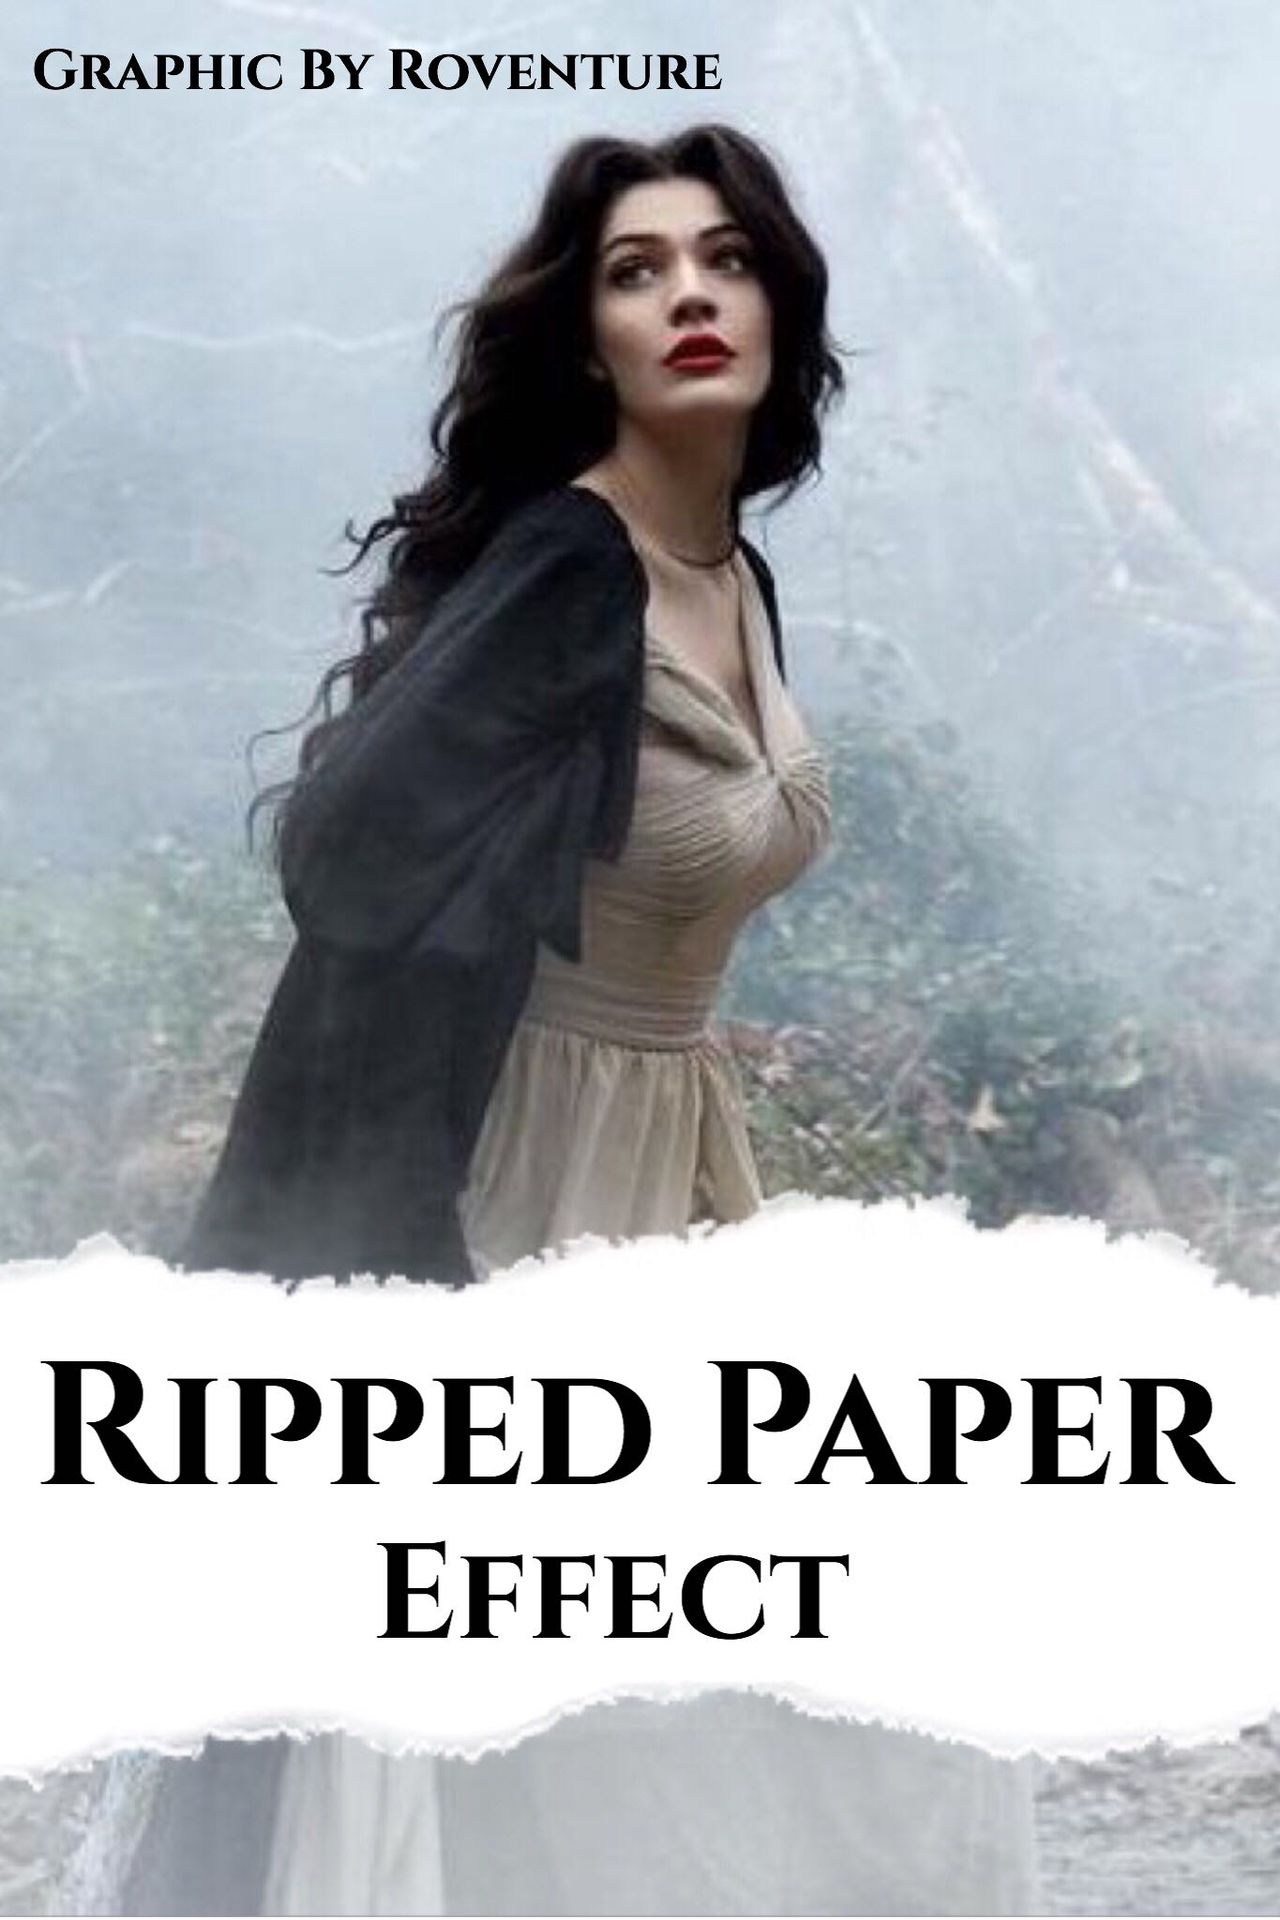 cover templates and tutorials - ripped paper effect